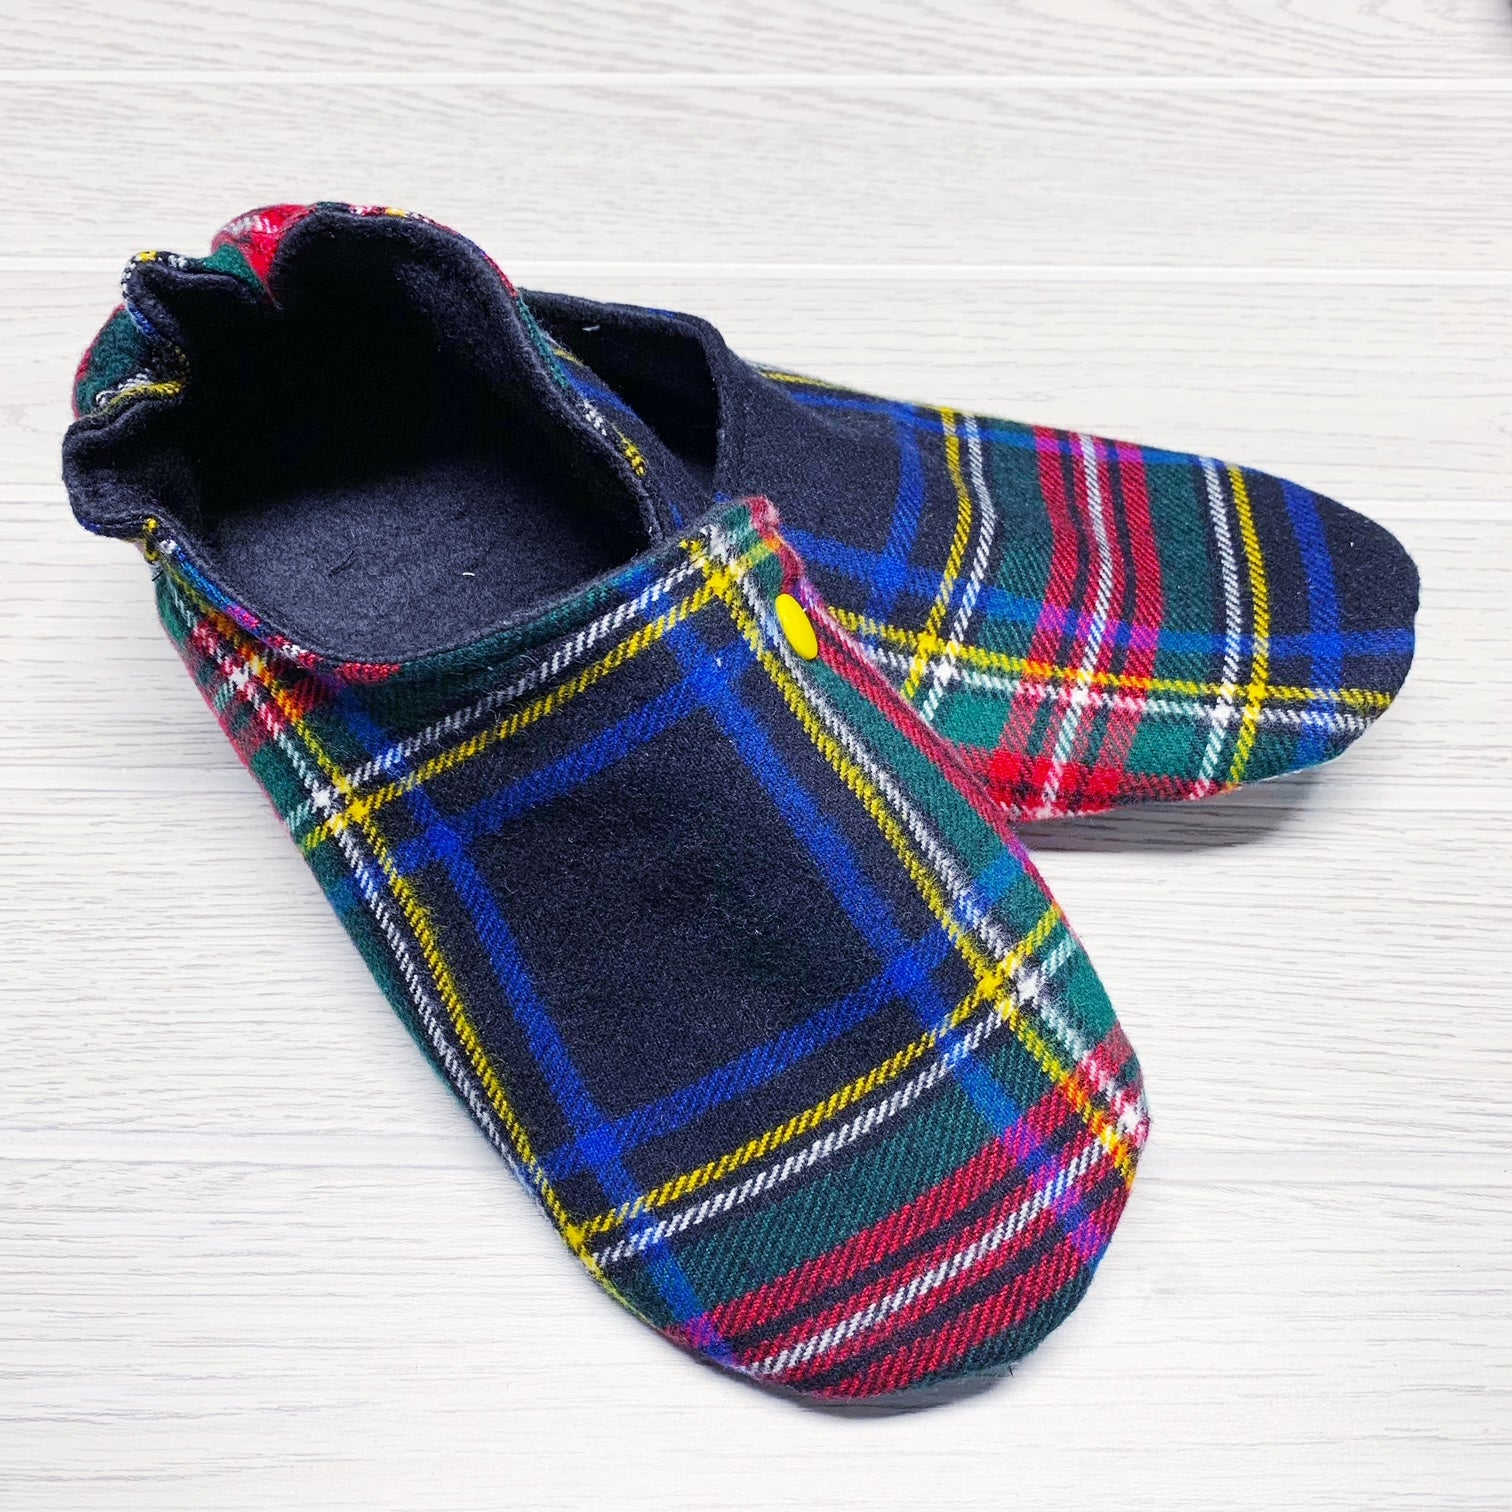 Blanket Scarf Slippers - MEDIUM